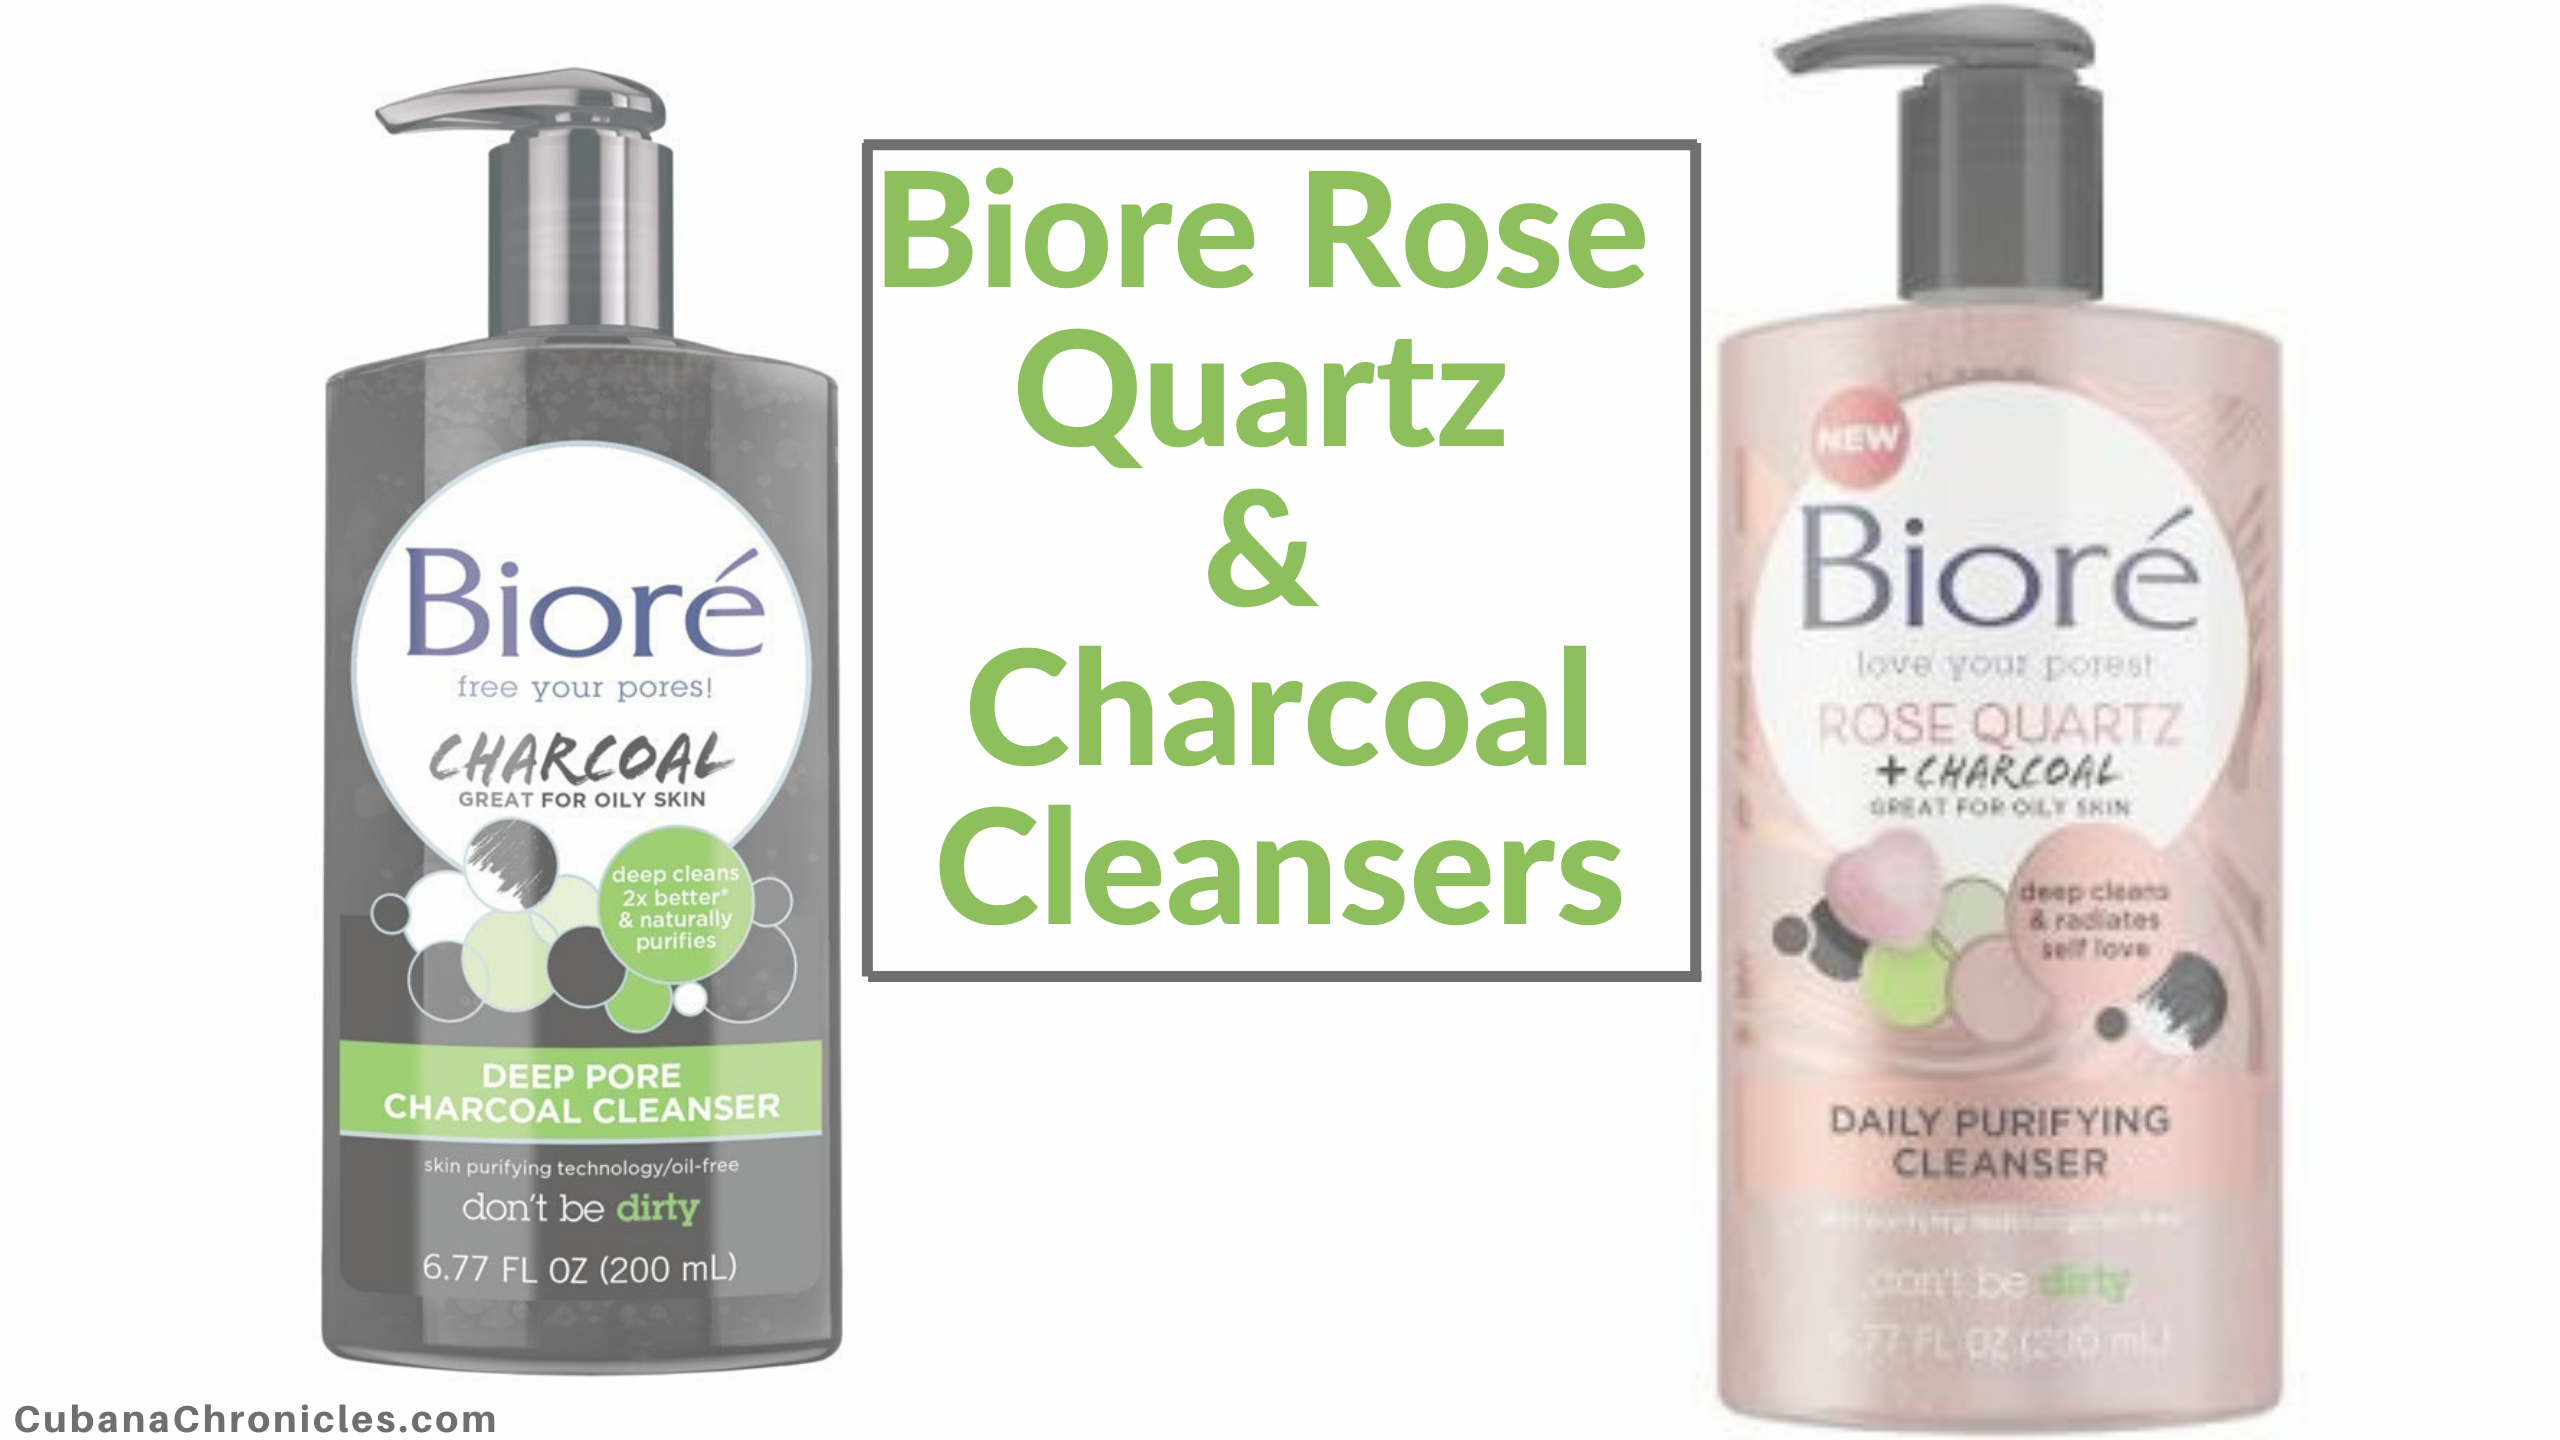 Biore Rose Quartz & Charcoal Cleanser